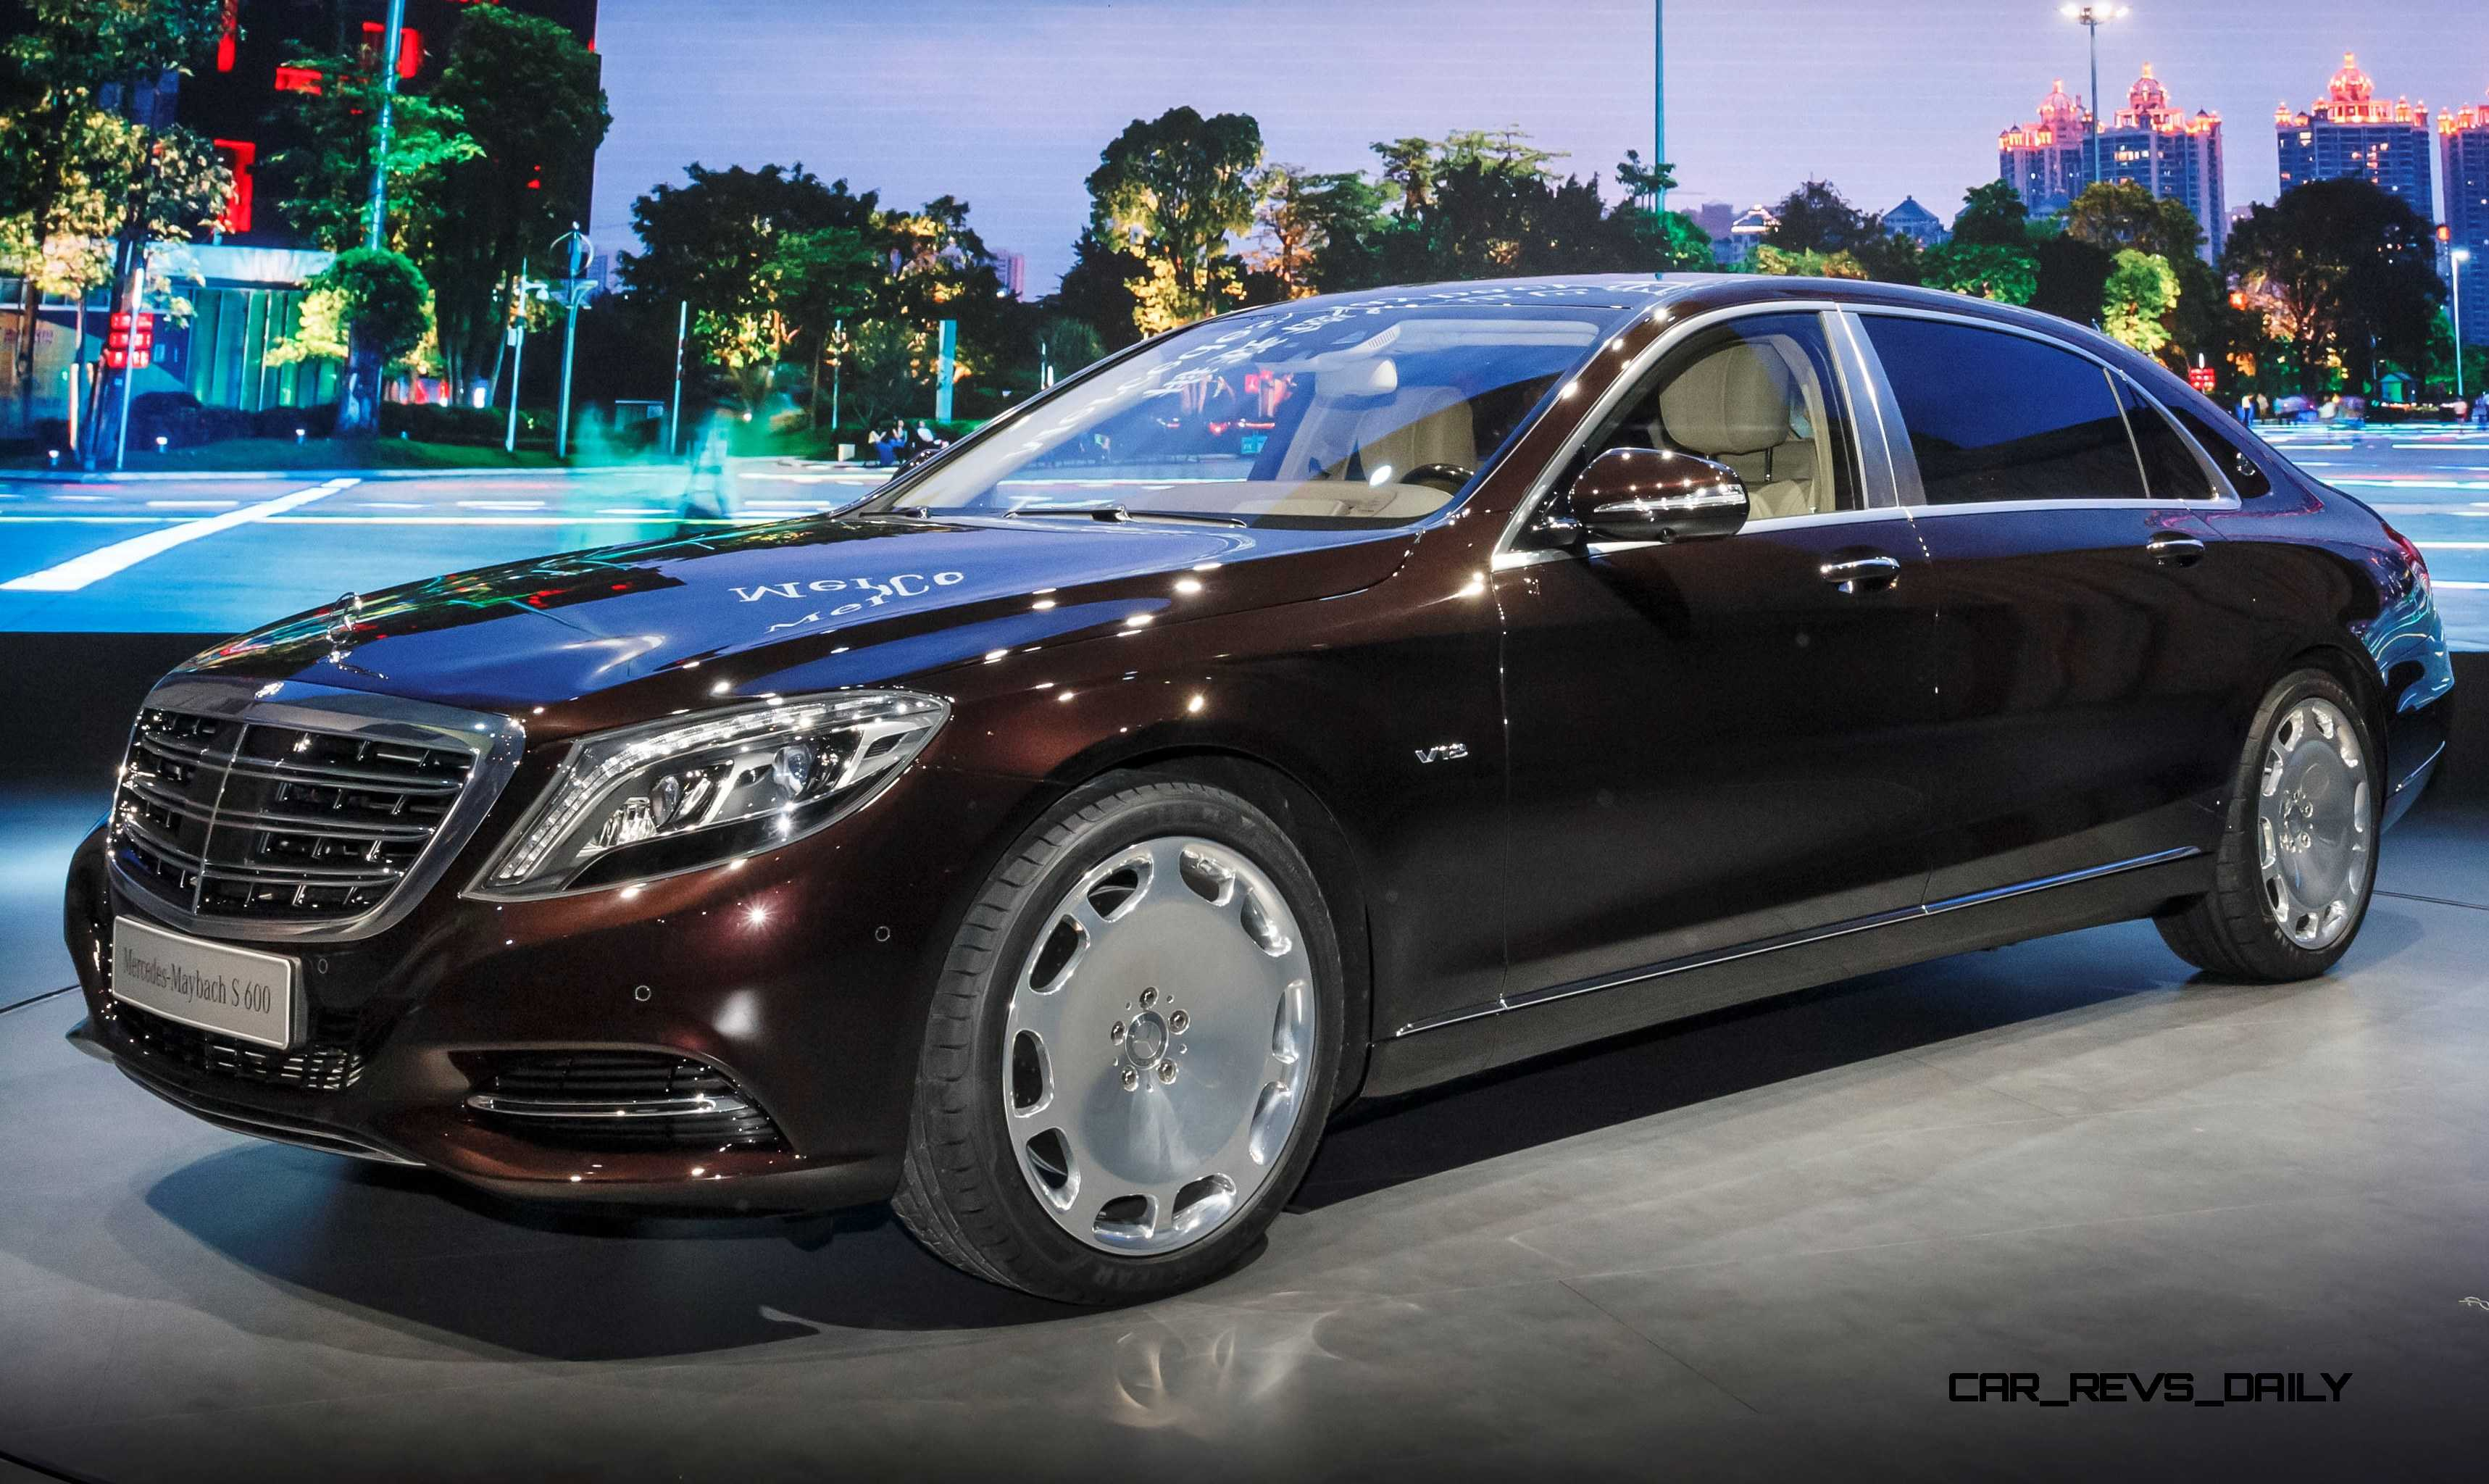 2015 mercedes maybach s600 brings royal upgrades to new for Mercedes benz s600 royale